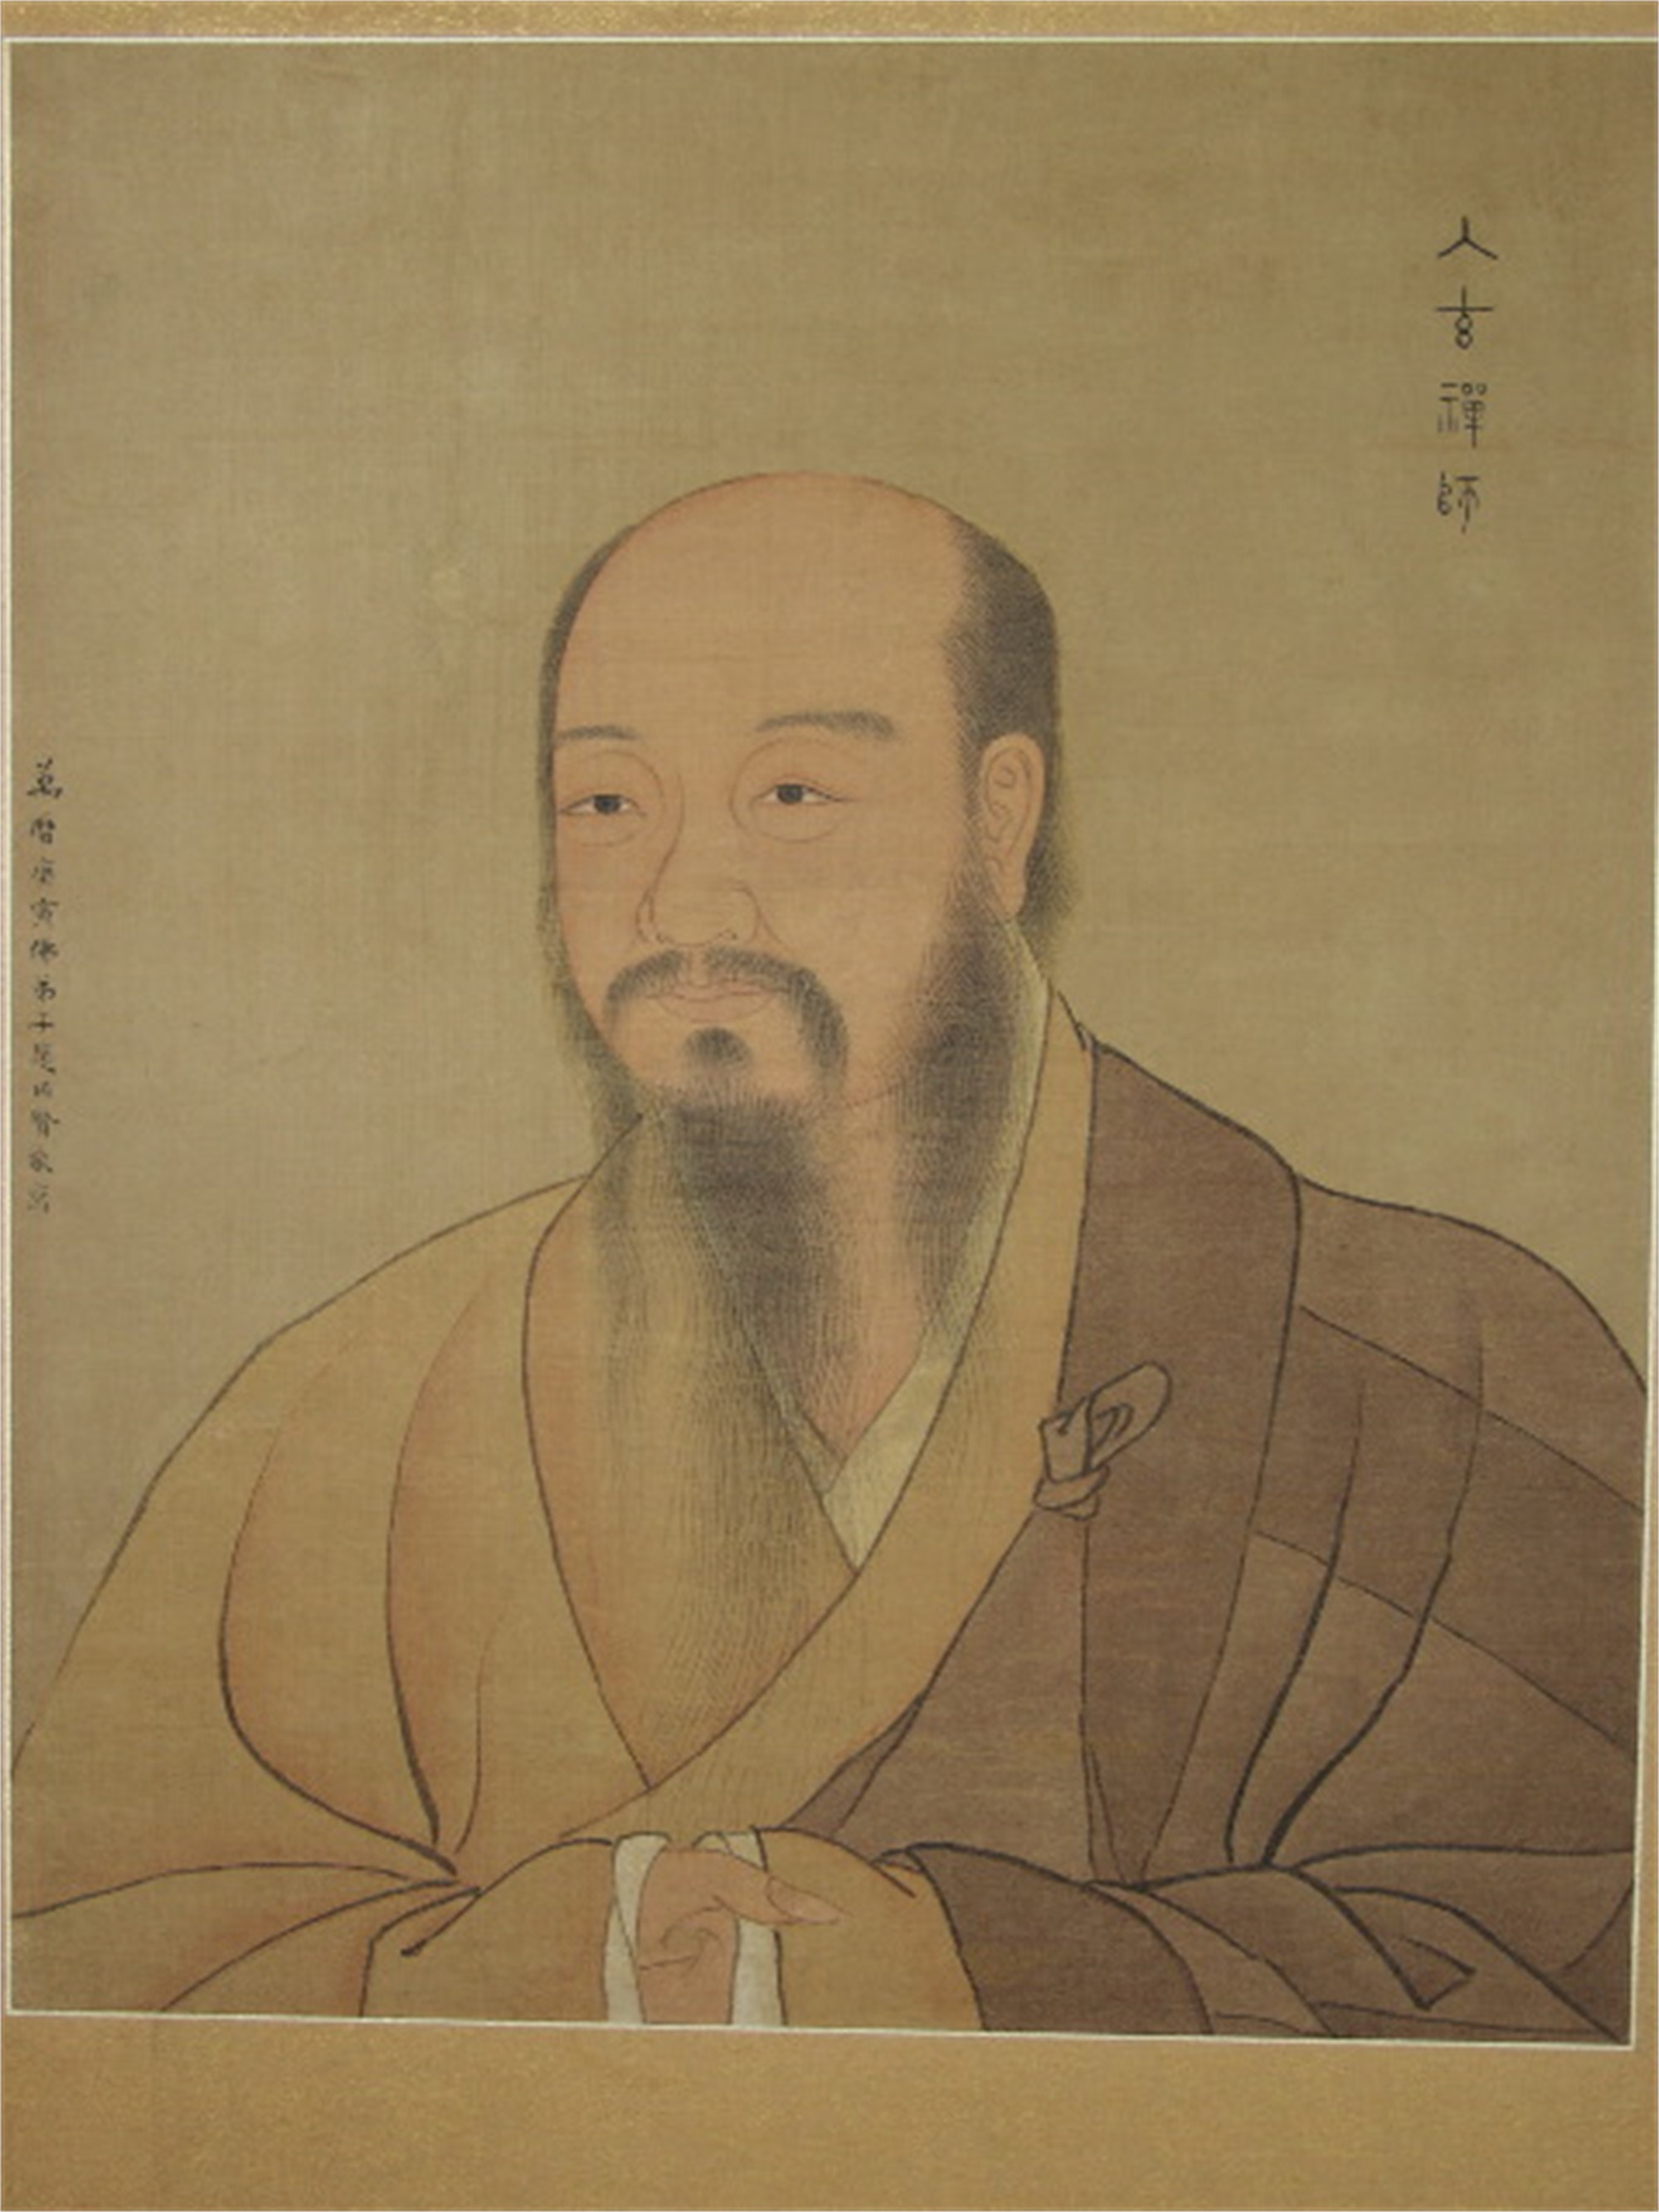 PAINTING OF A BUDDHIST PATRIARCH by Zhao, Yong Xian